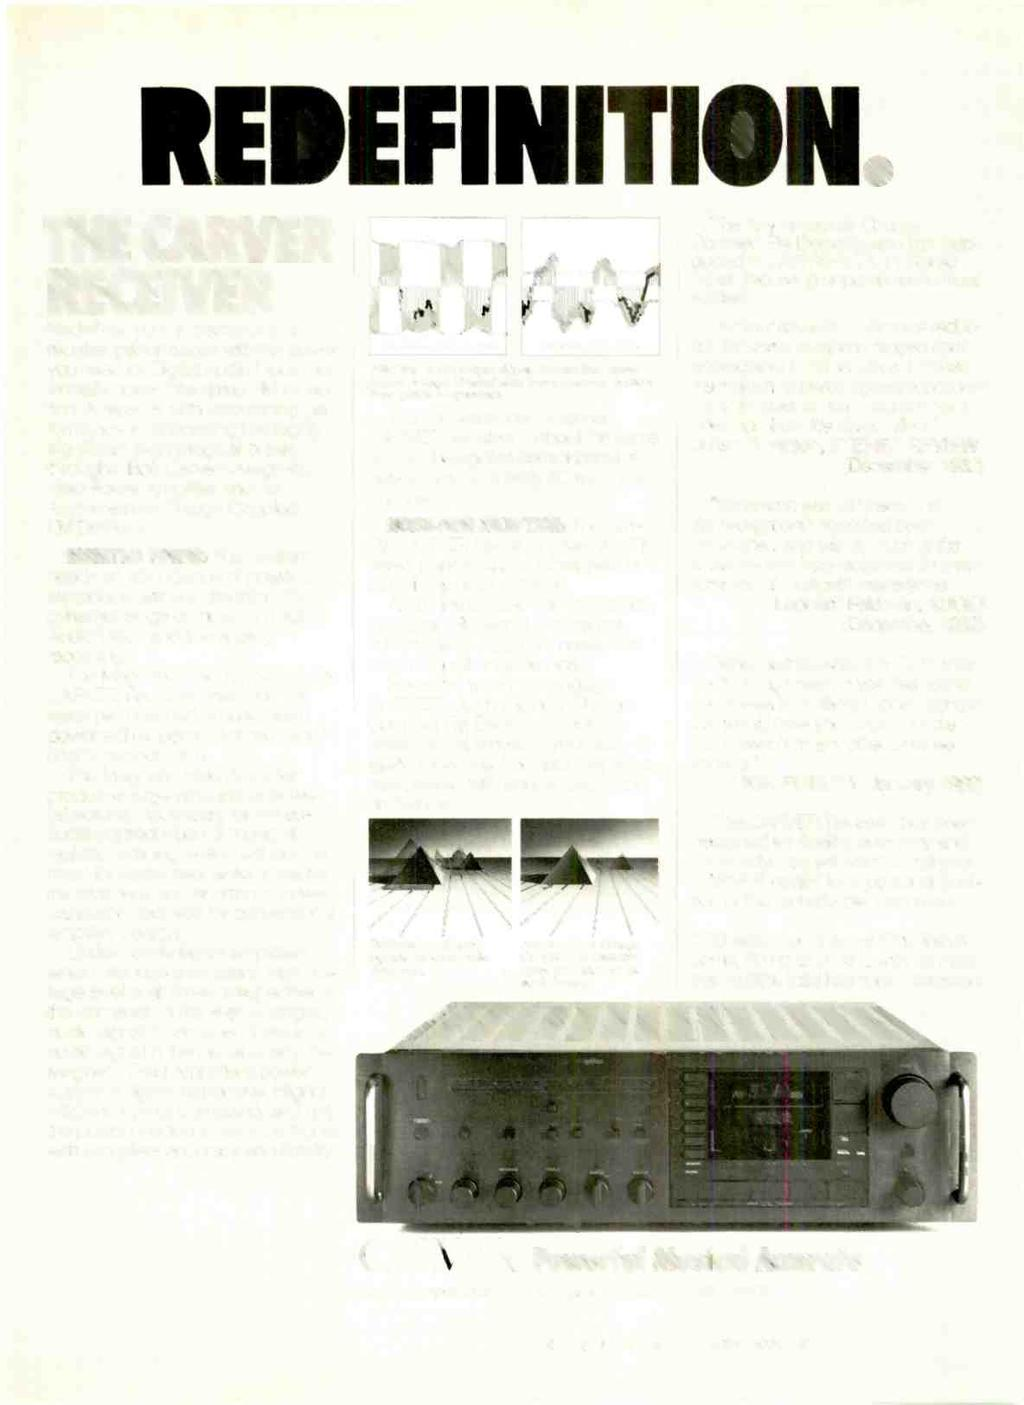 Review Understanding Amplifier Classes Guide To Specs Mini Power 11w Stereo Assembled Future Circuit Board Kit The Carver Receiver Redefines Your Expectations Of Performance With You Need